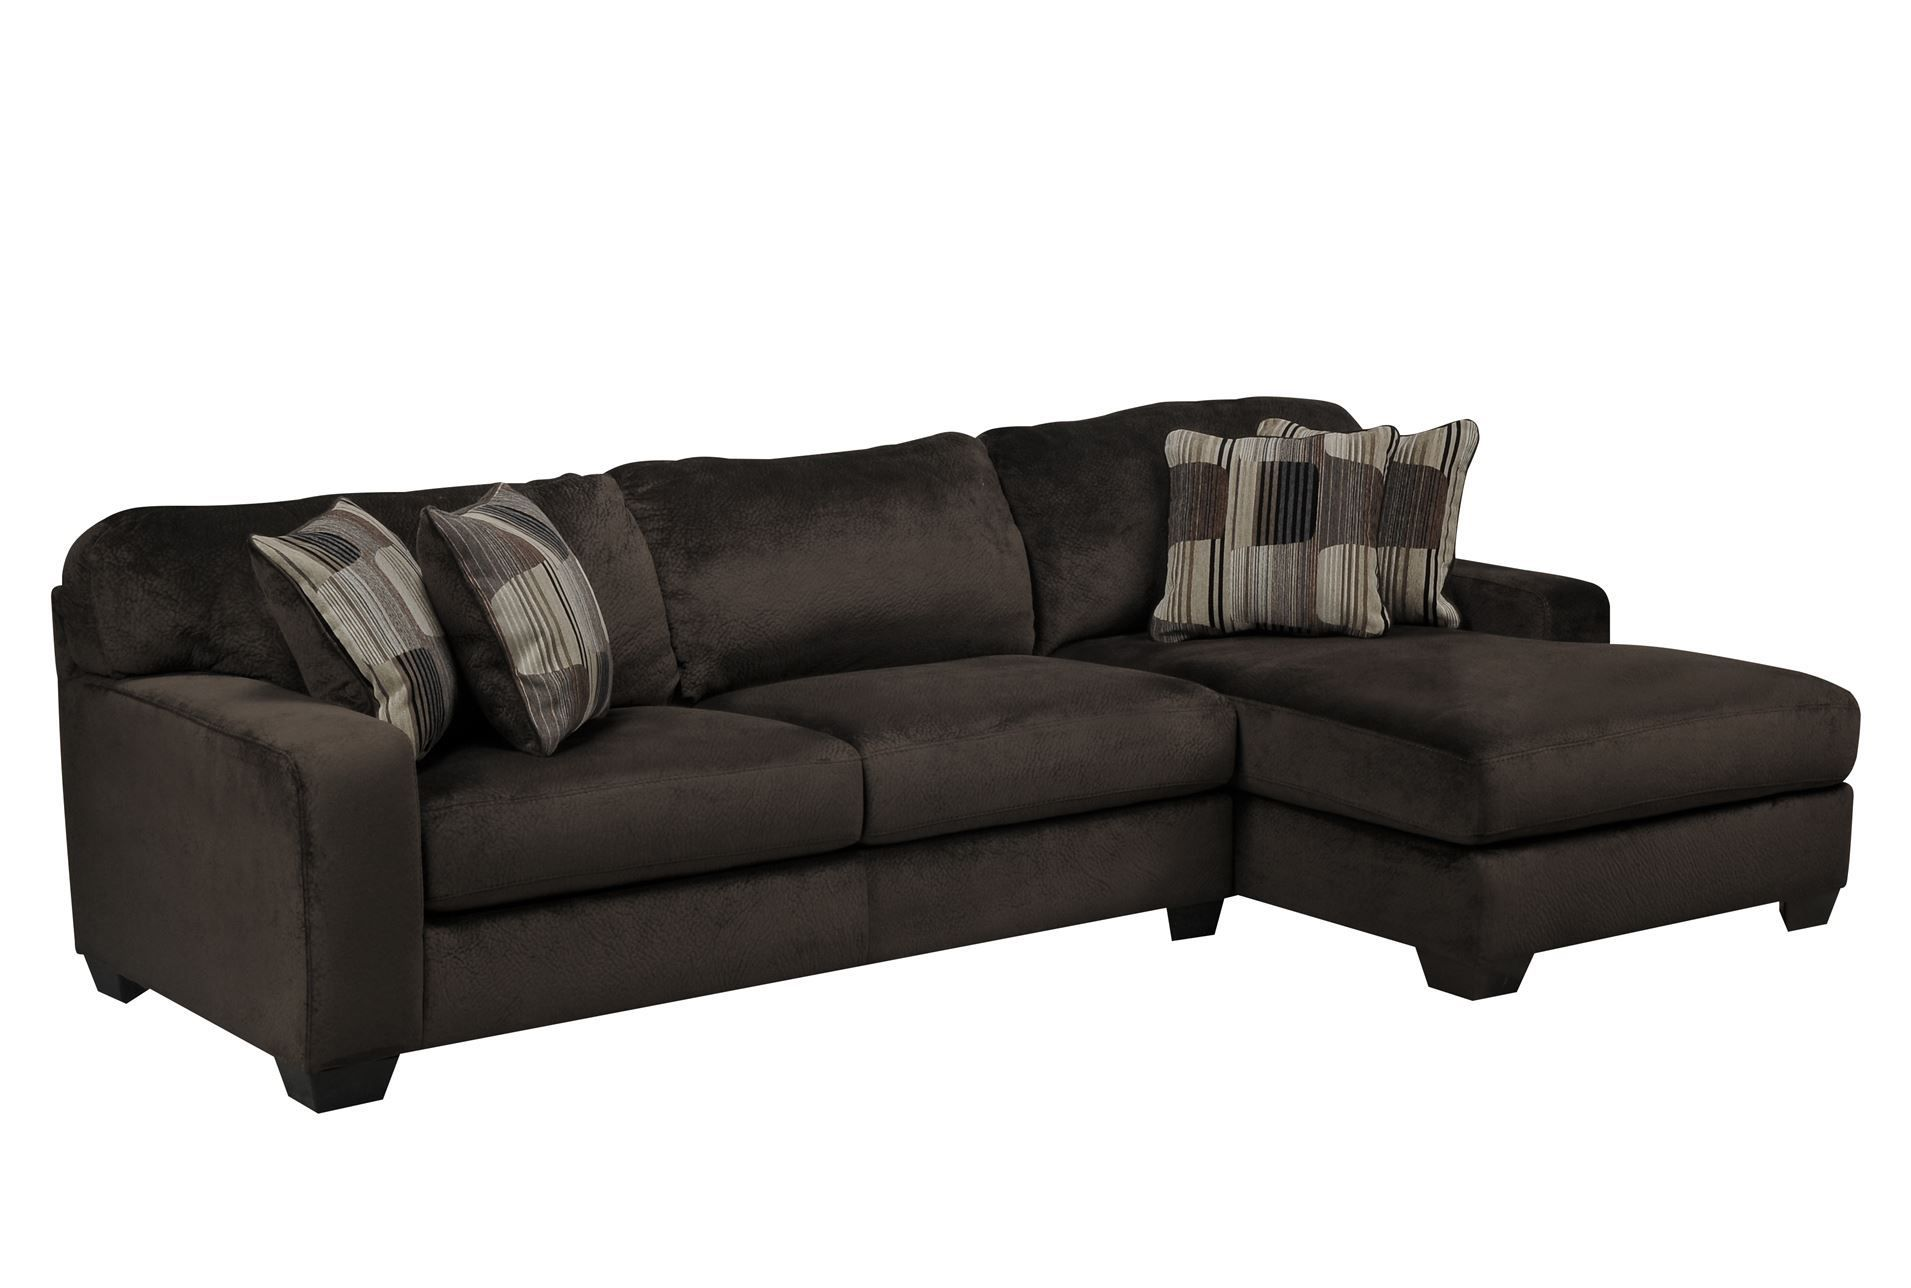 Westin Chocolate 2 Piece Sectional W/Raf Chaise | Recipes to Cook ...